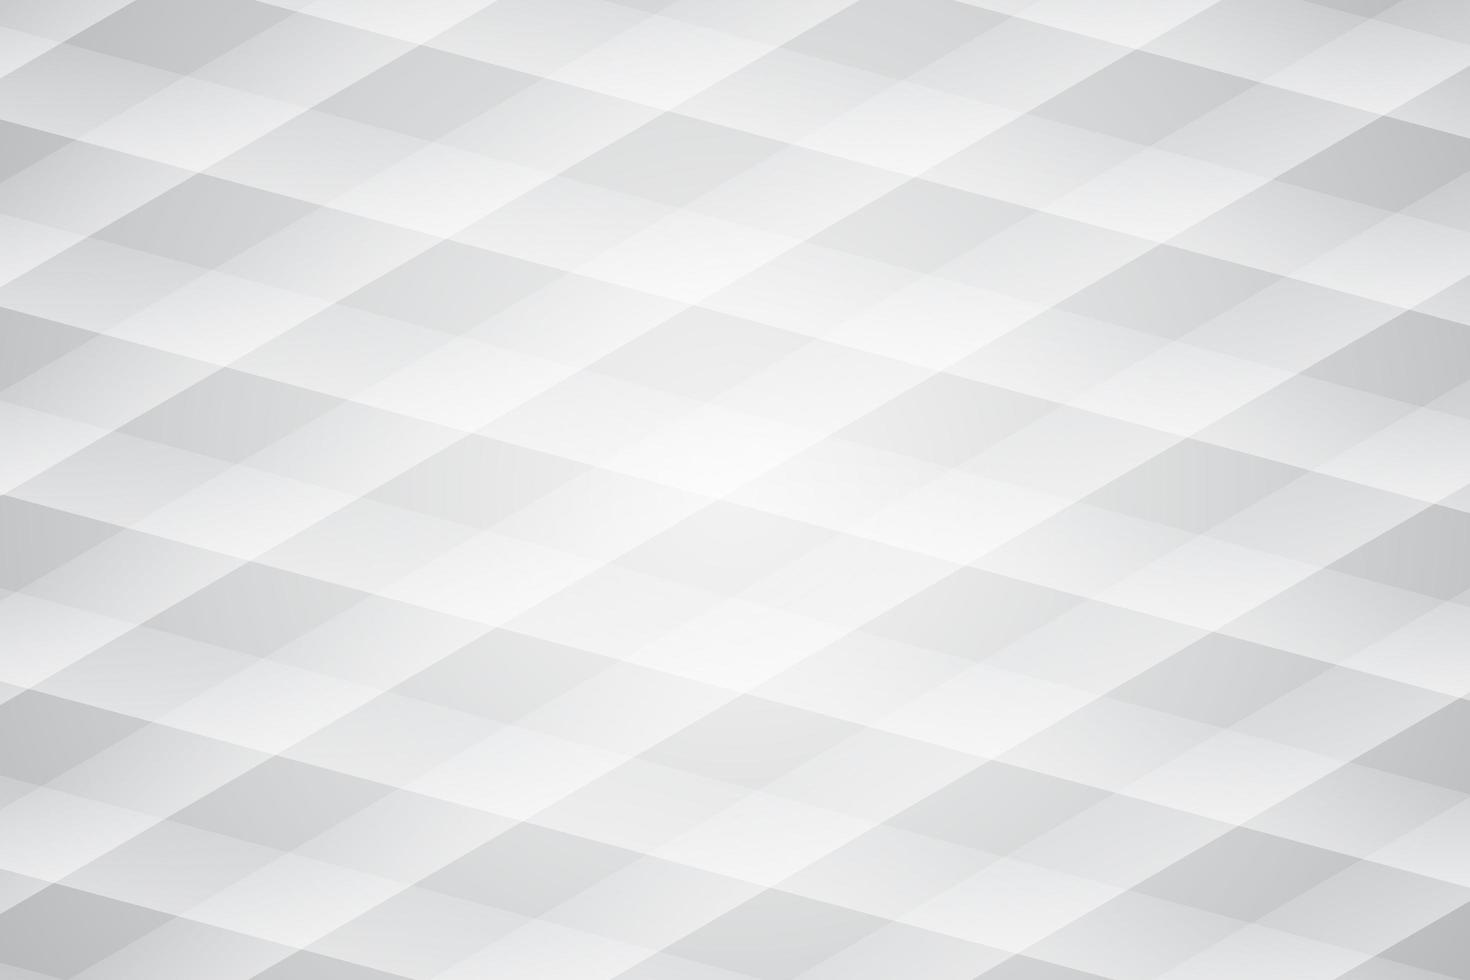 Abstract white modern seamless white background vector